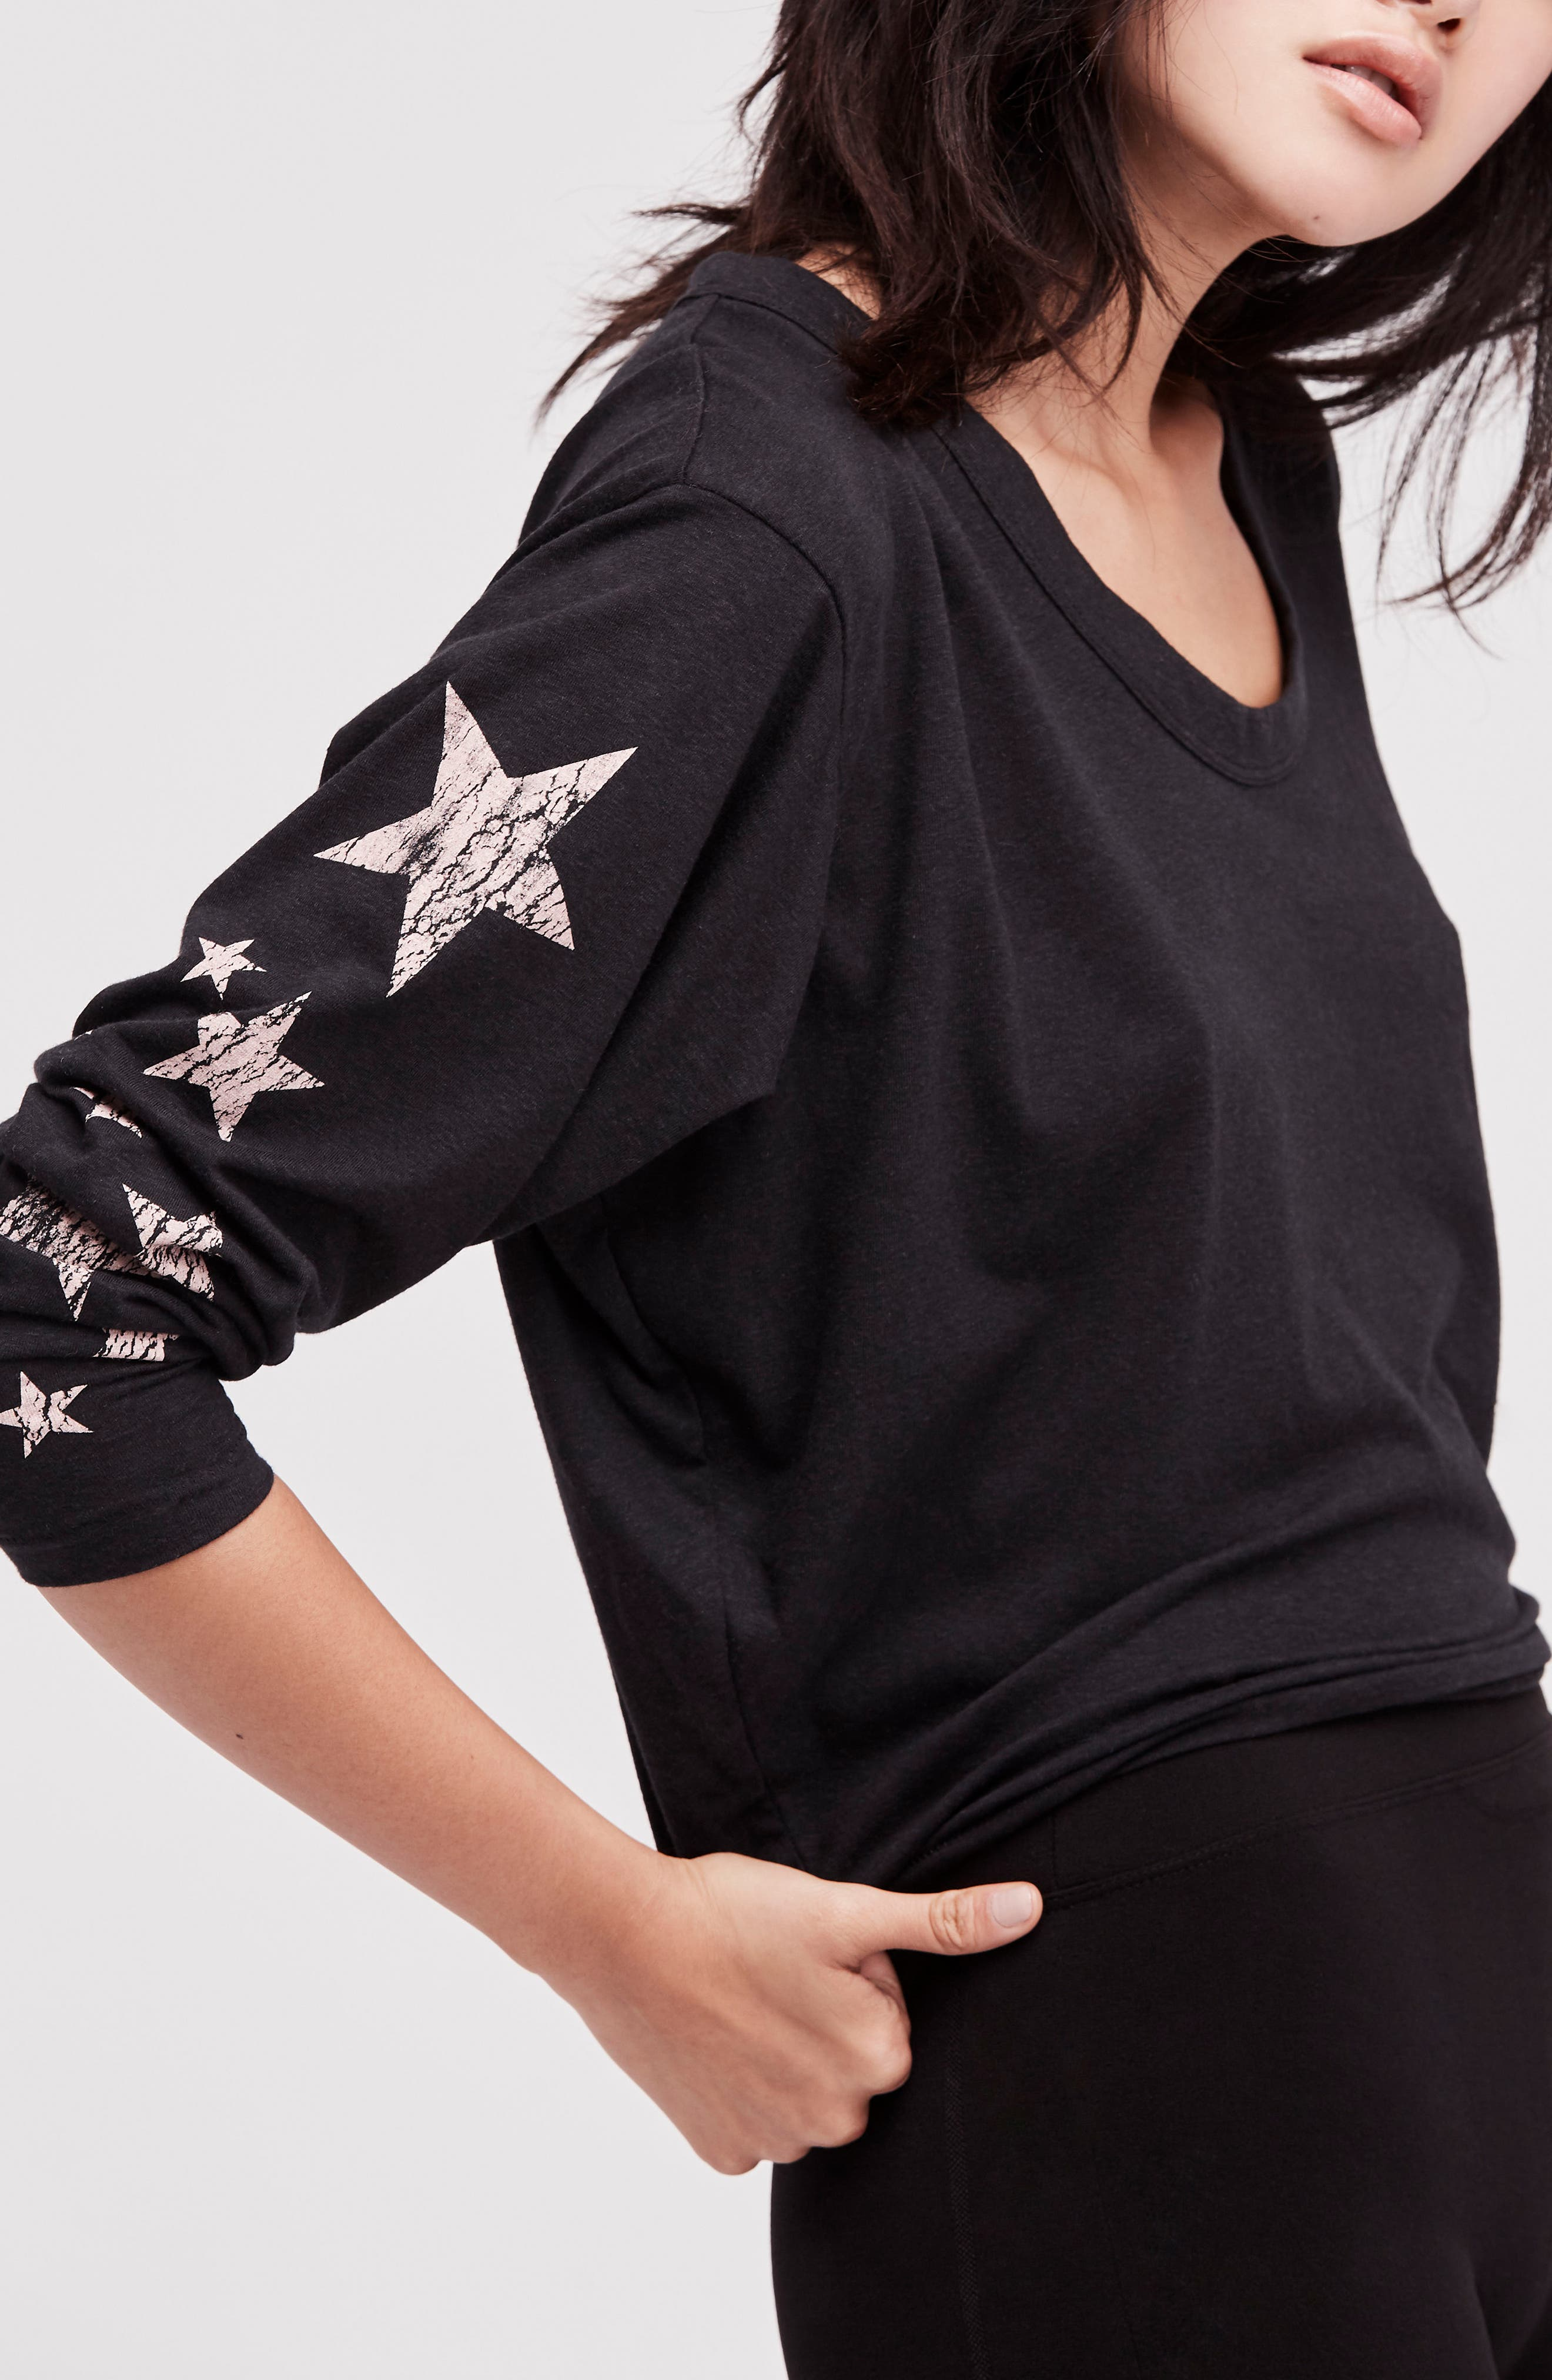 FREE PEOPLE MOVEMENT, Melrose Star Graphic Top, Alternate thumbnail 8, color, 001